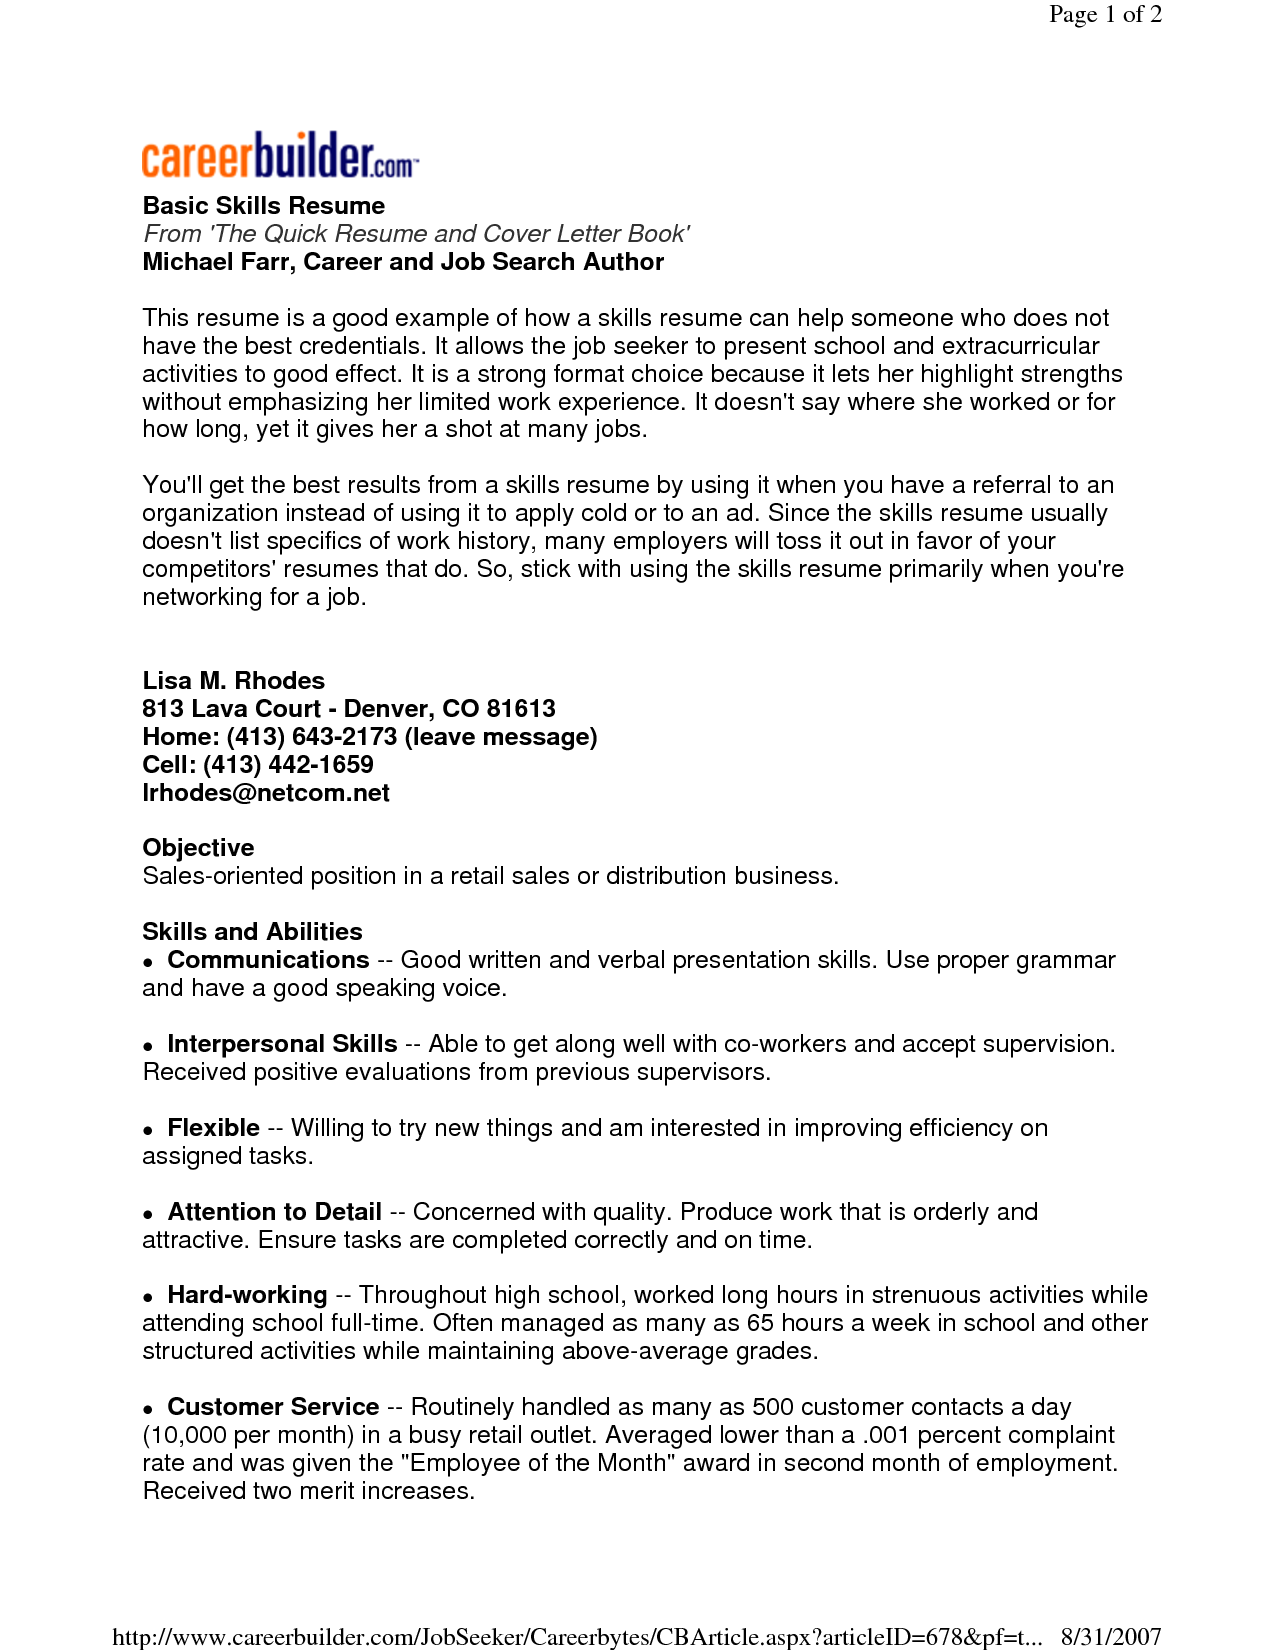 [ Example Resume Basic Computer Skills Summary Skill Sample Resumes Cover  Letters Interviews Assembly And ]   Best Free Home Design Idea U0026 Inspiration  Examples Of Basic Resumes